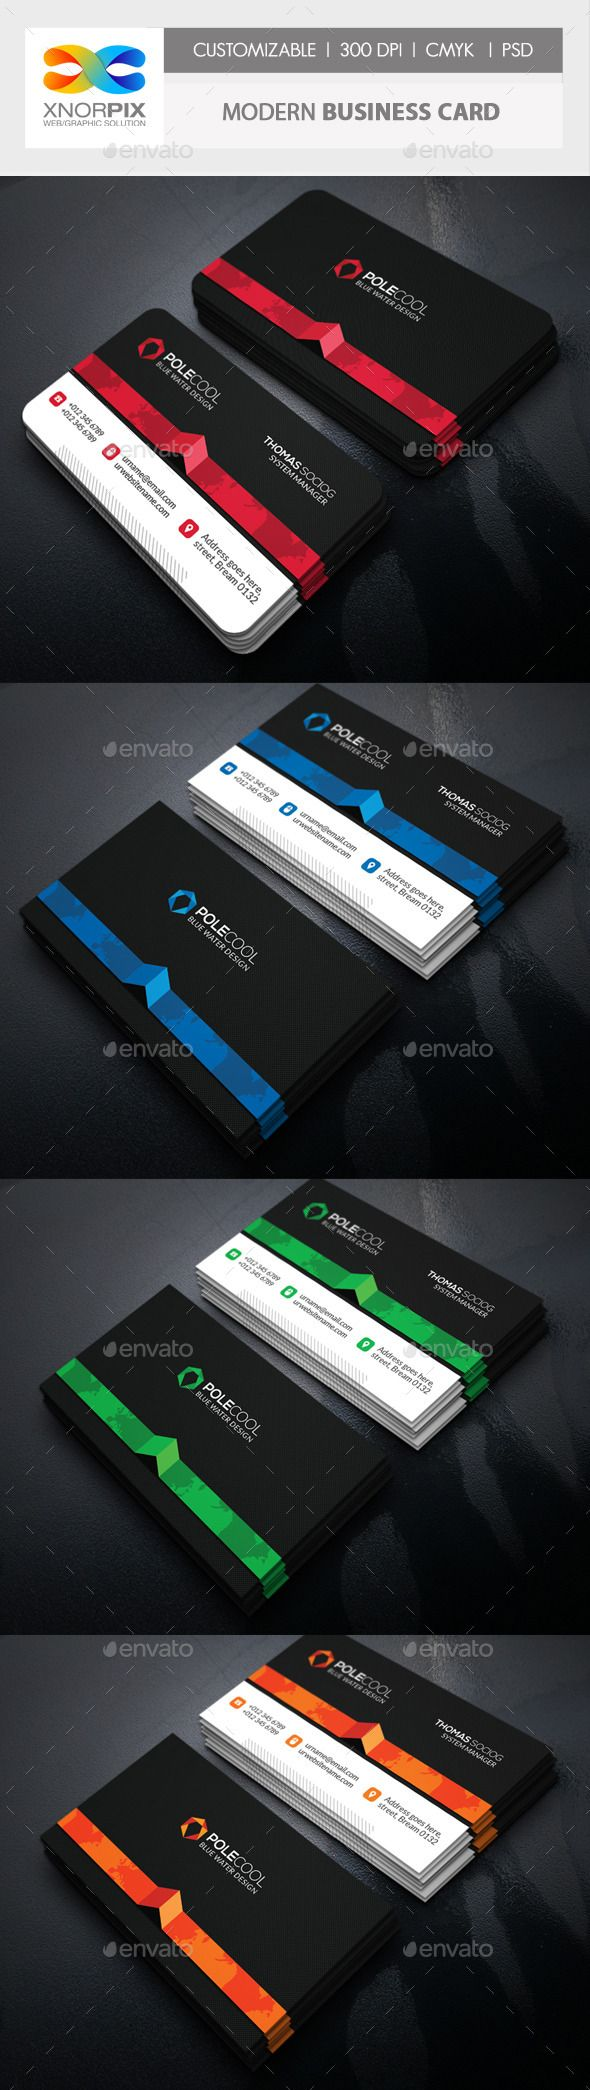 Modern Business Card Template #design Download: http://graphicriver.net/item/modern-business-card/11119300?ref=ksioks